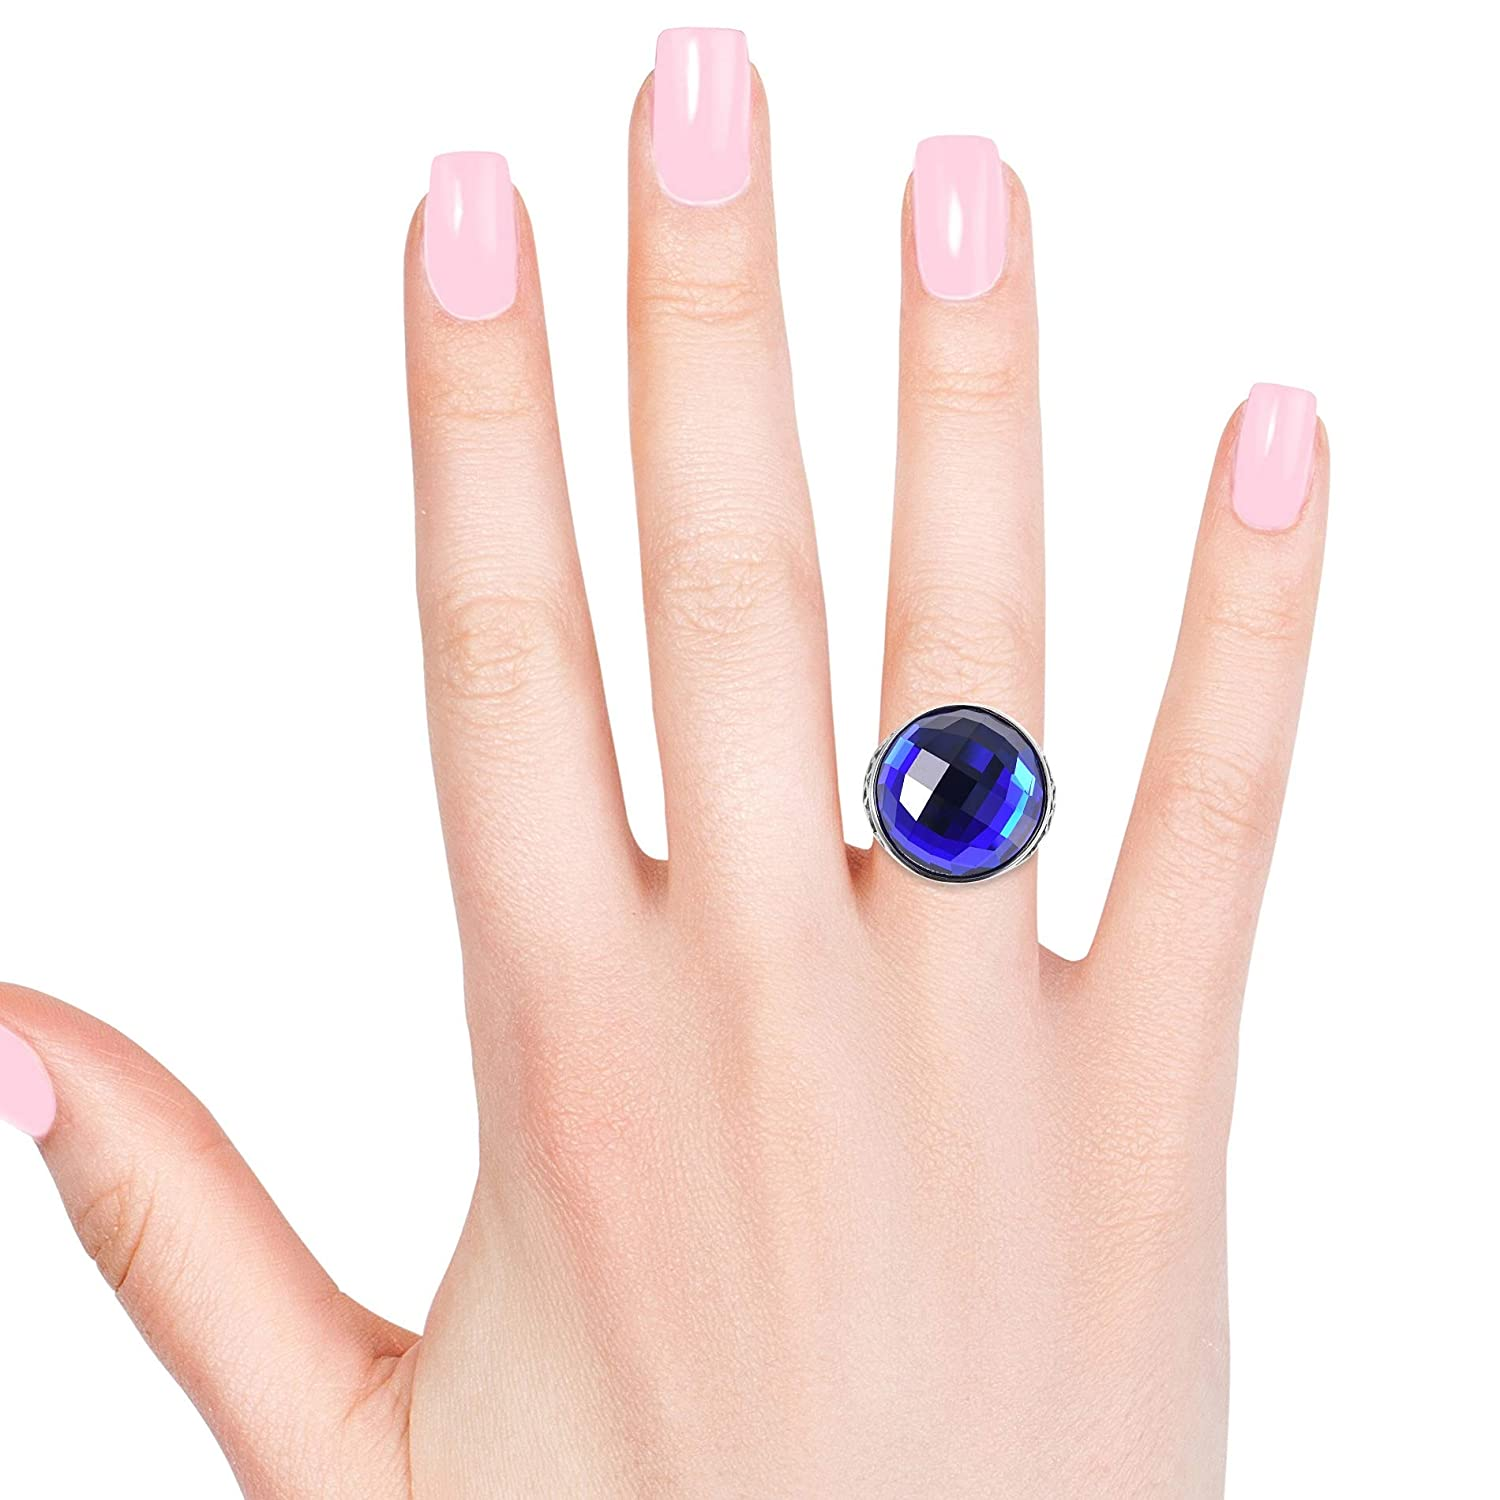 Shop LC Delivering Joy Cocktail Ring Stainless Steel Round Blue Glass Jewelry for Women Size 9